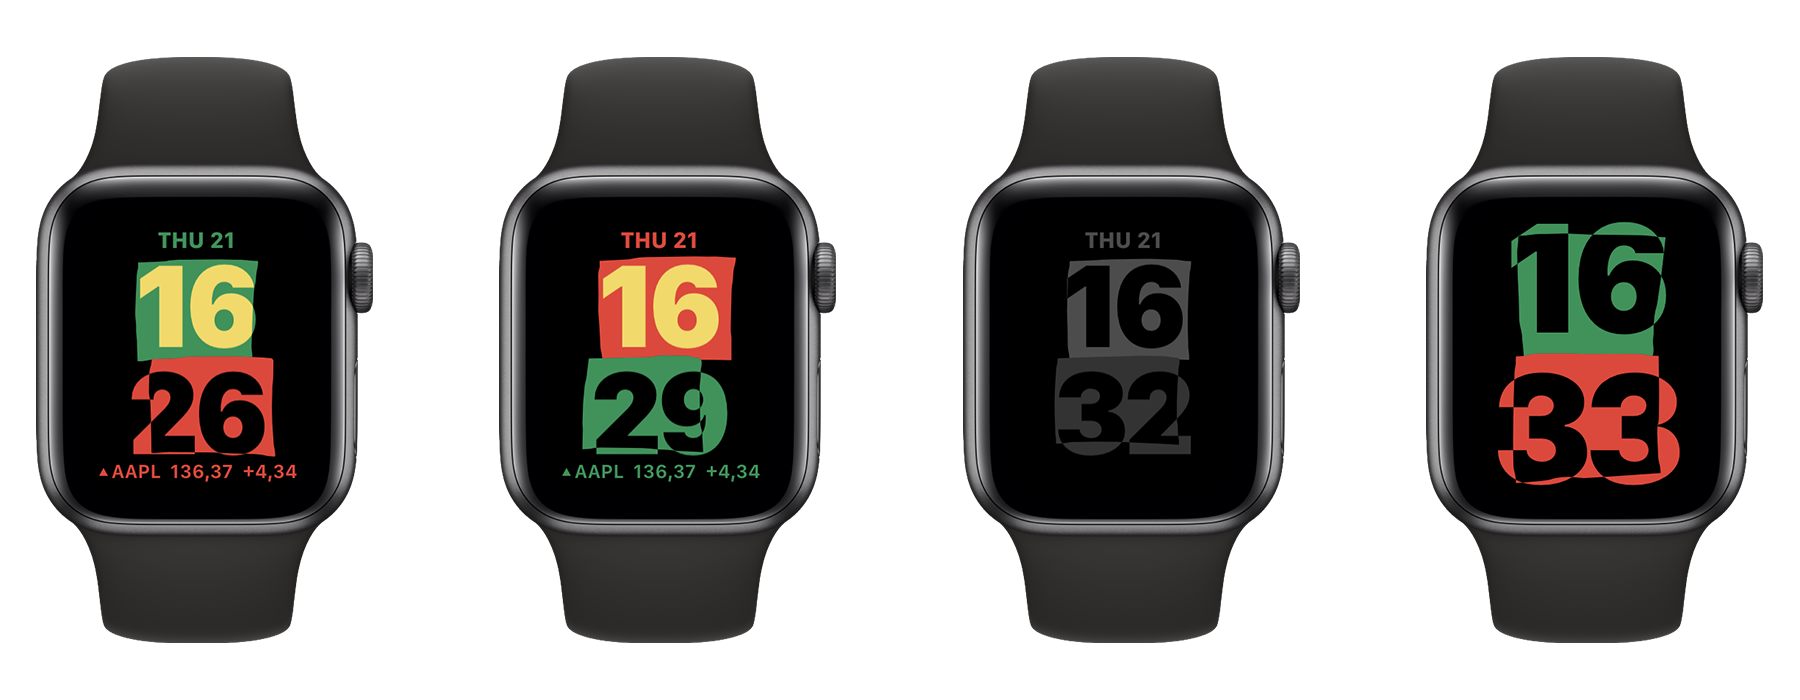 Unity-watch-face-watchOS-7.3.png